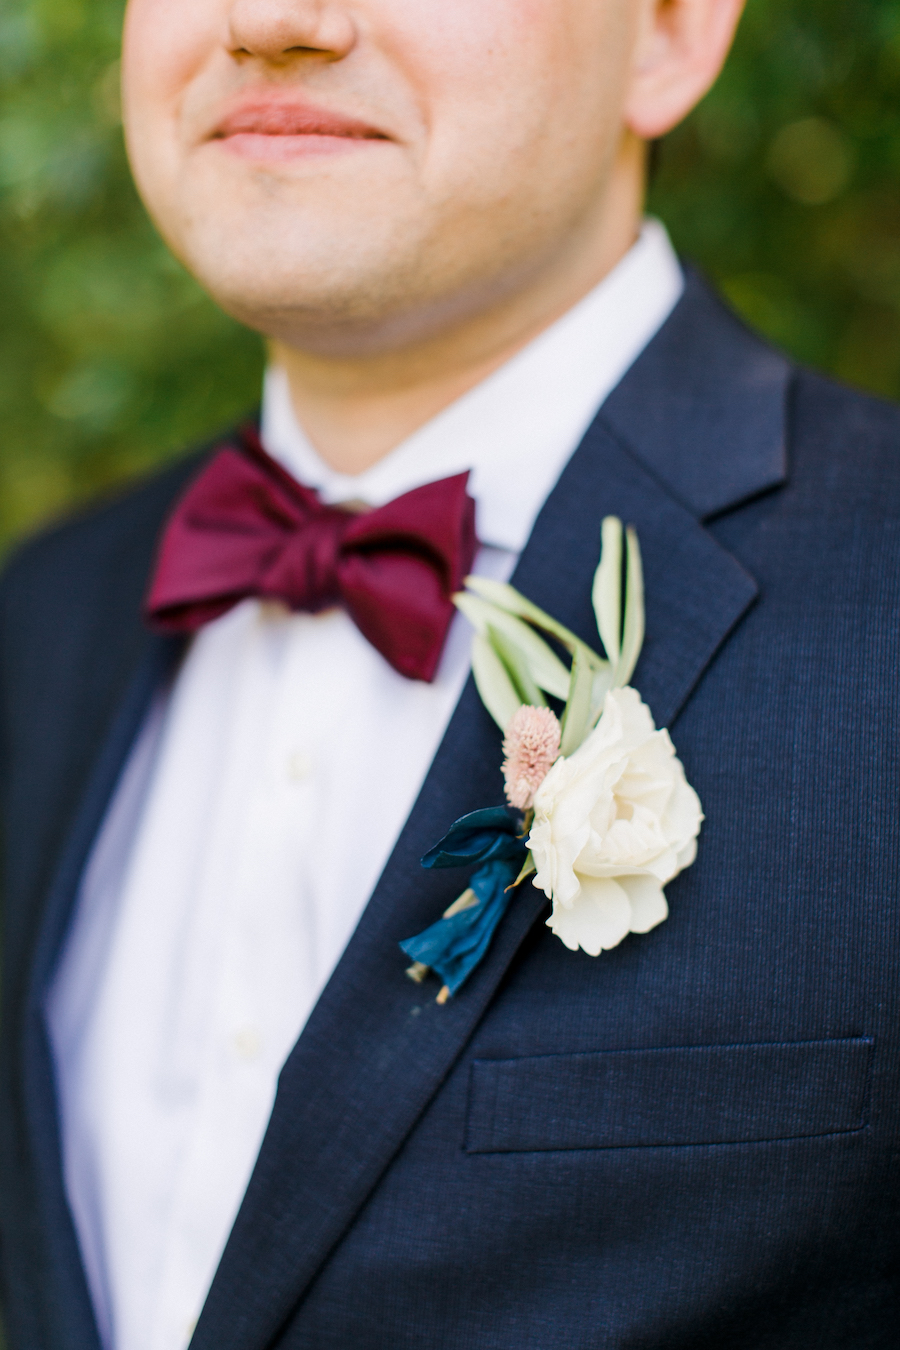 A groom and his boutonniere